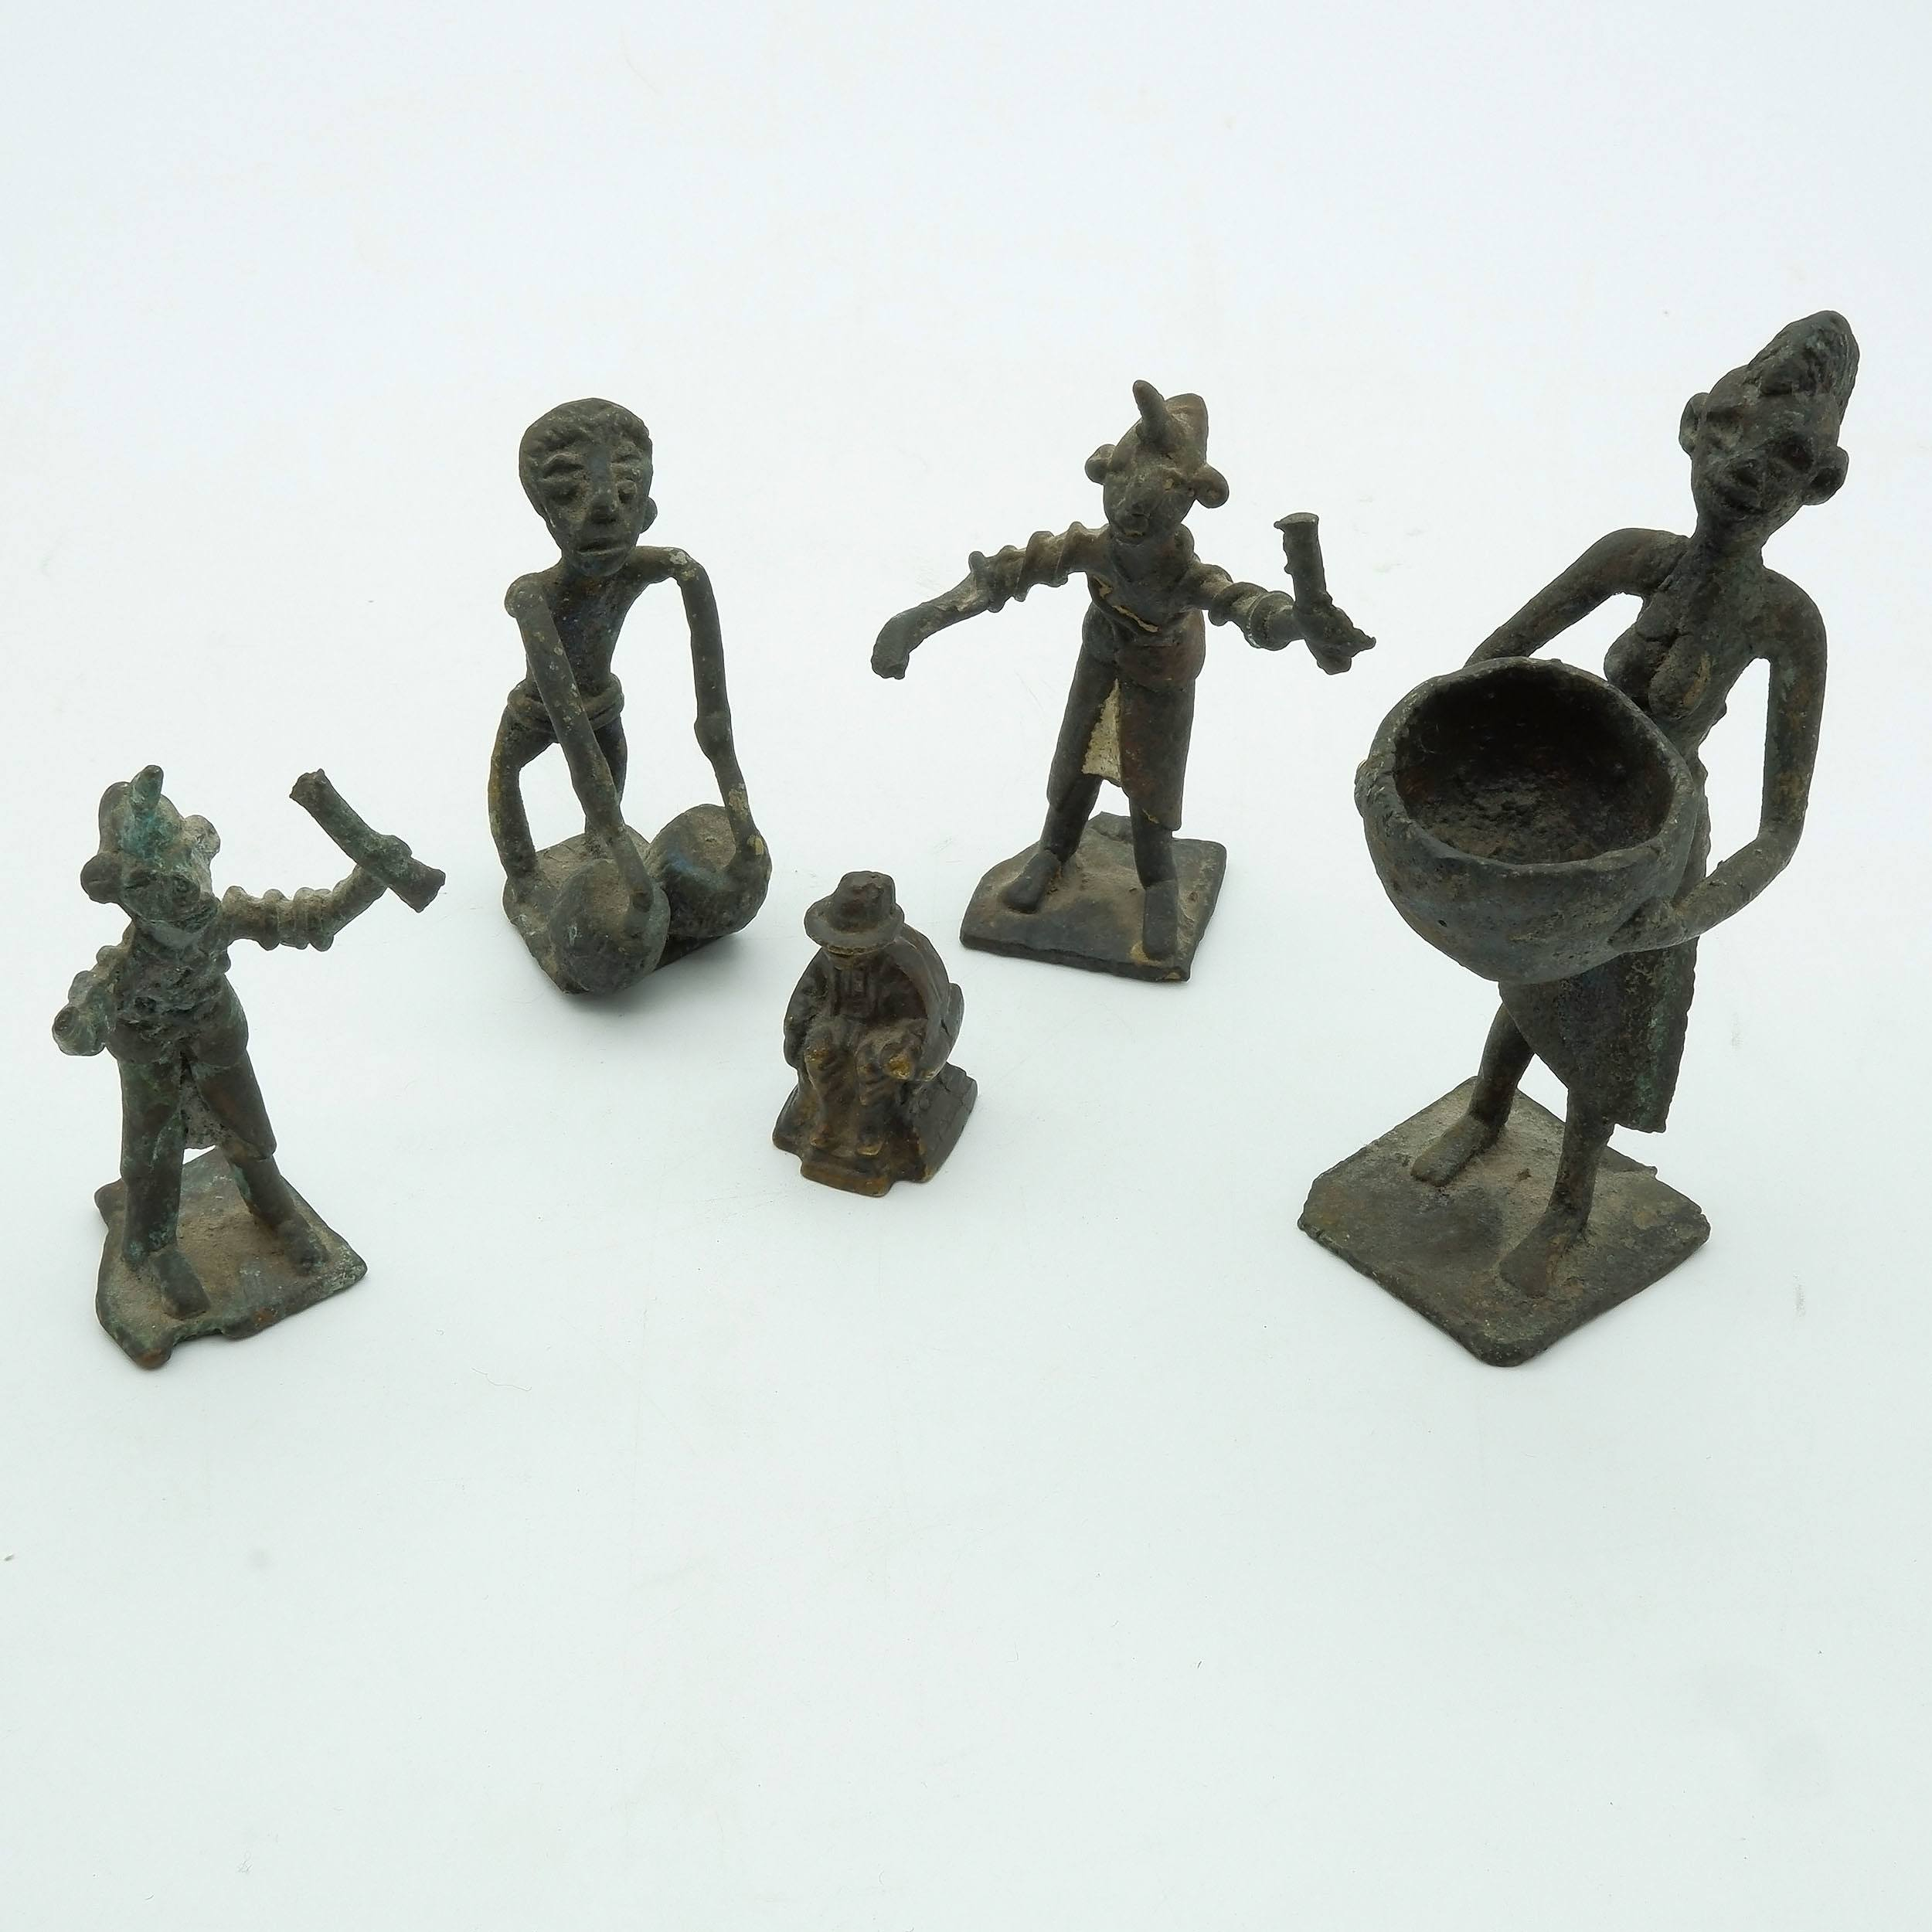 'Five African Bronze Figures'